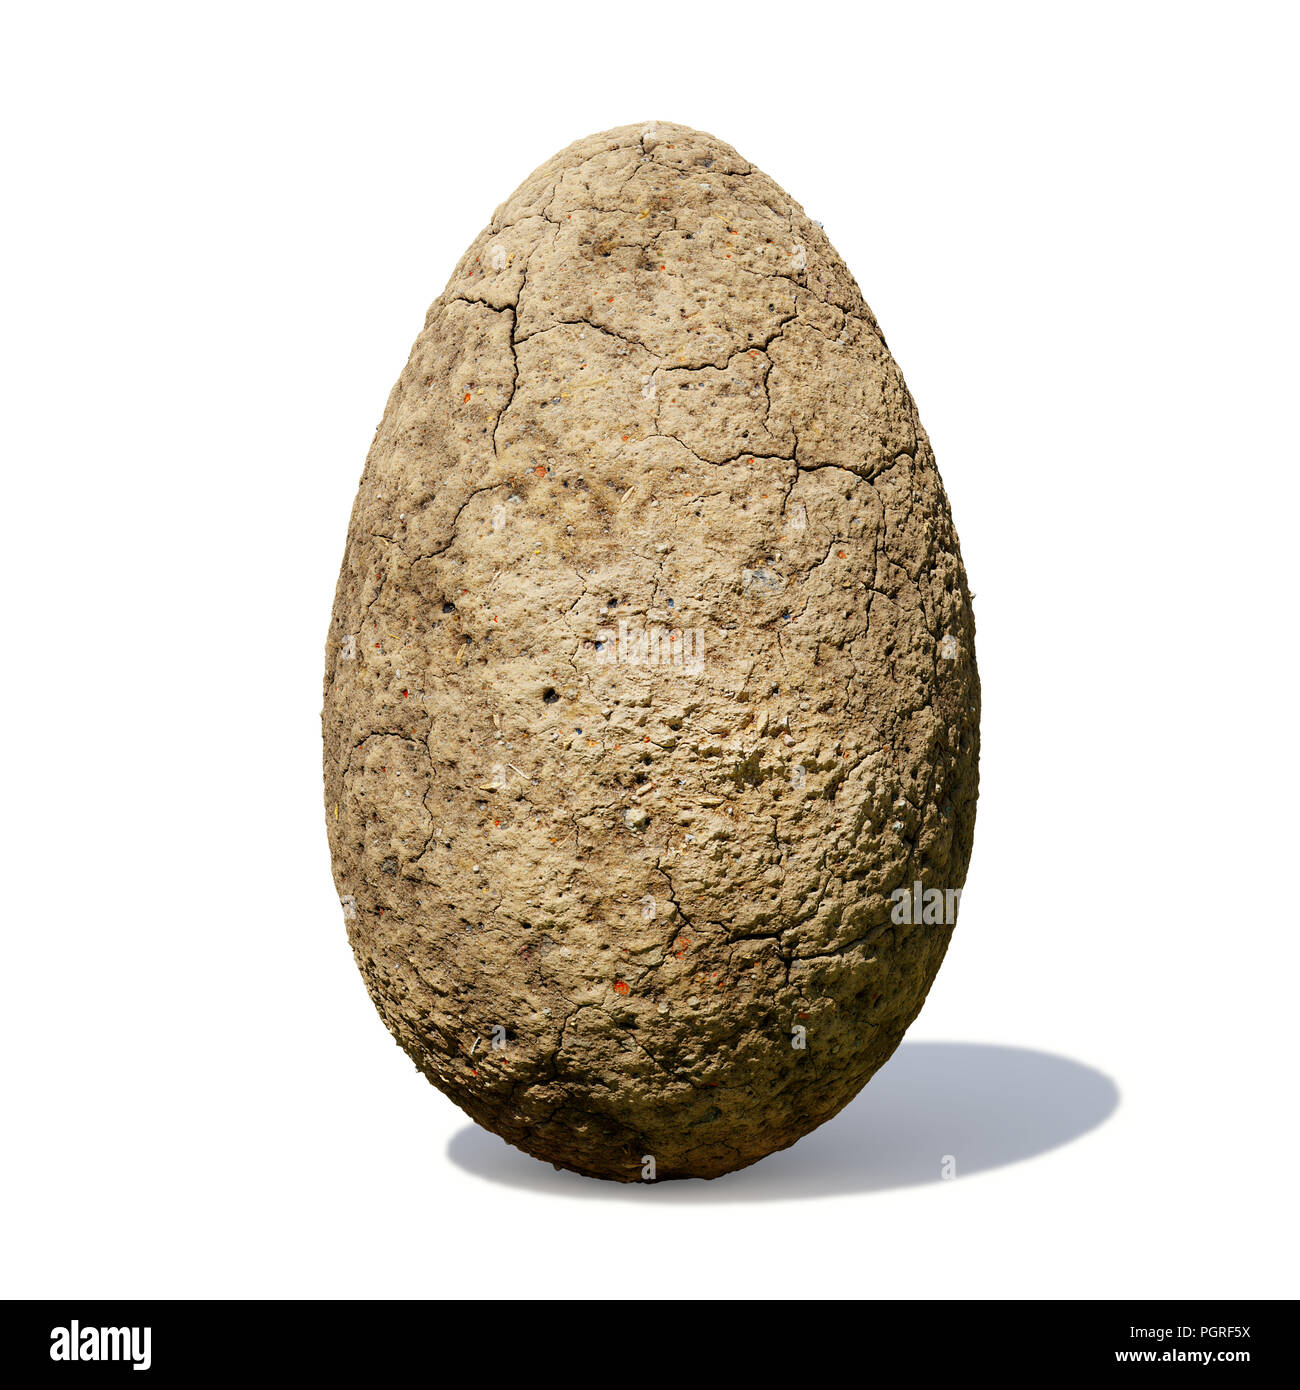 dinosaur egg, ancient stone egg with cracks isolated with shadow on white background - Stock Image